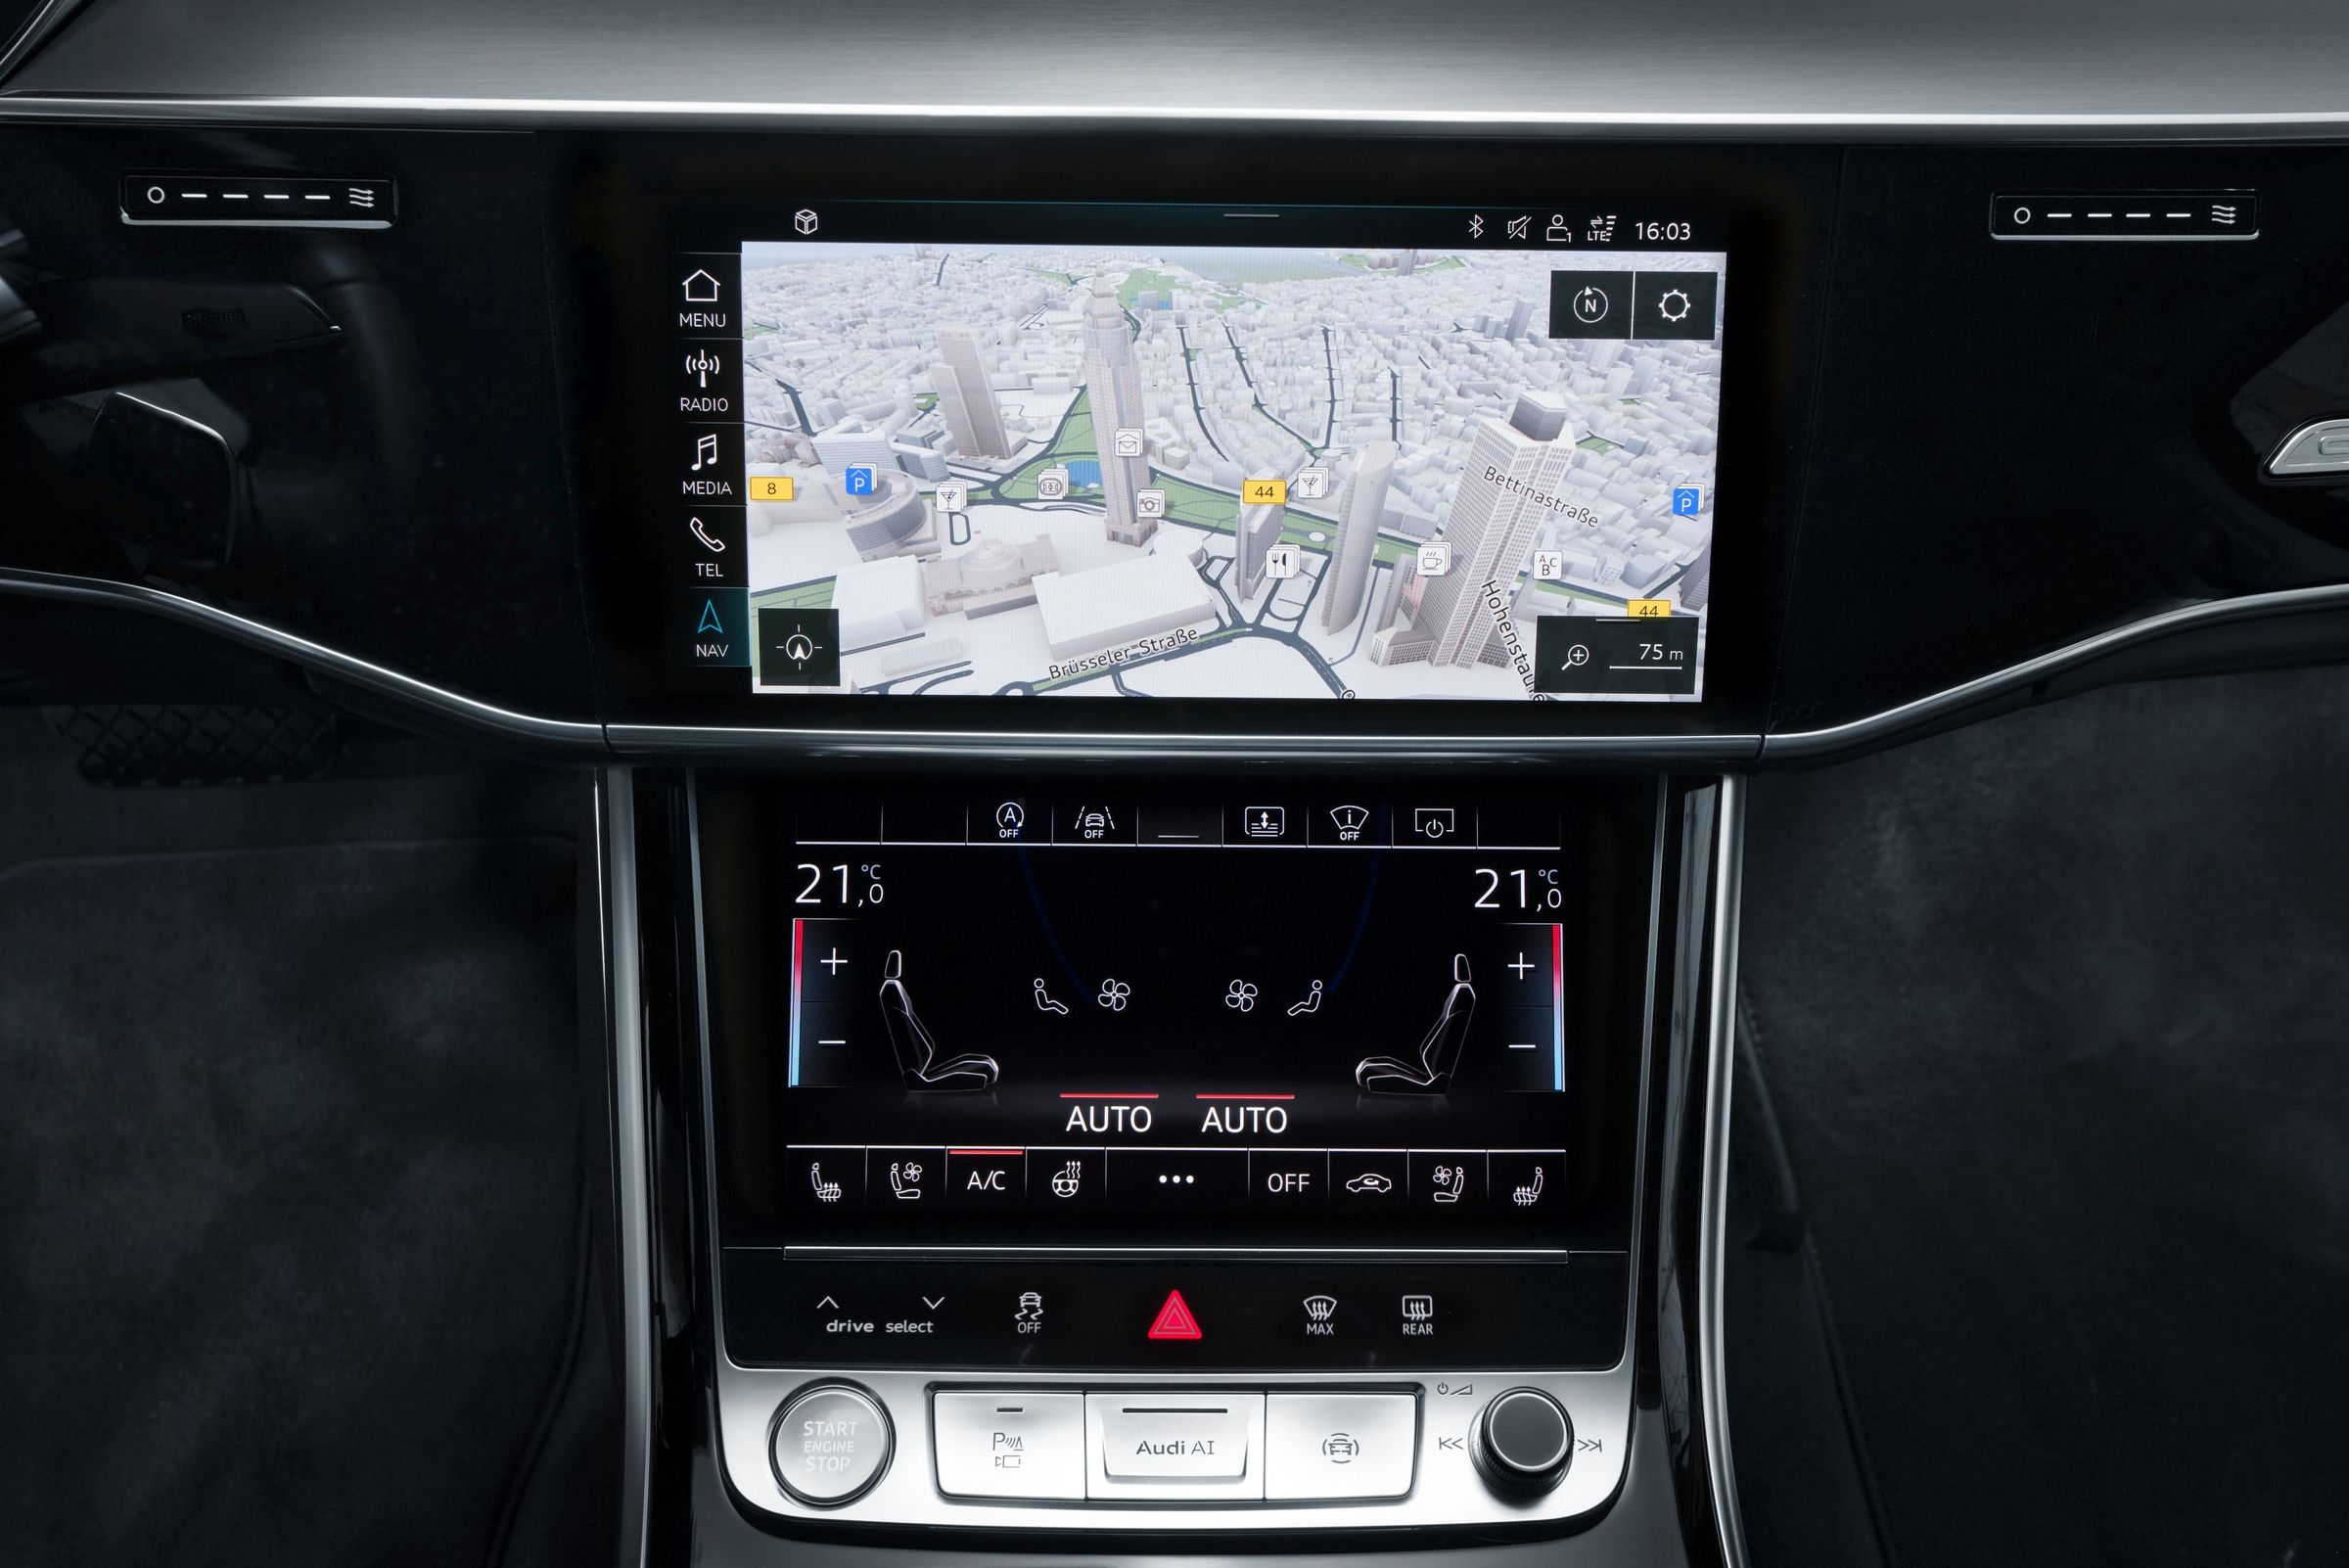 Infotainment Audi Mediacenter 2005 A4 Radio Navigation Technology At The Highest Level